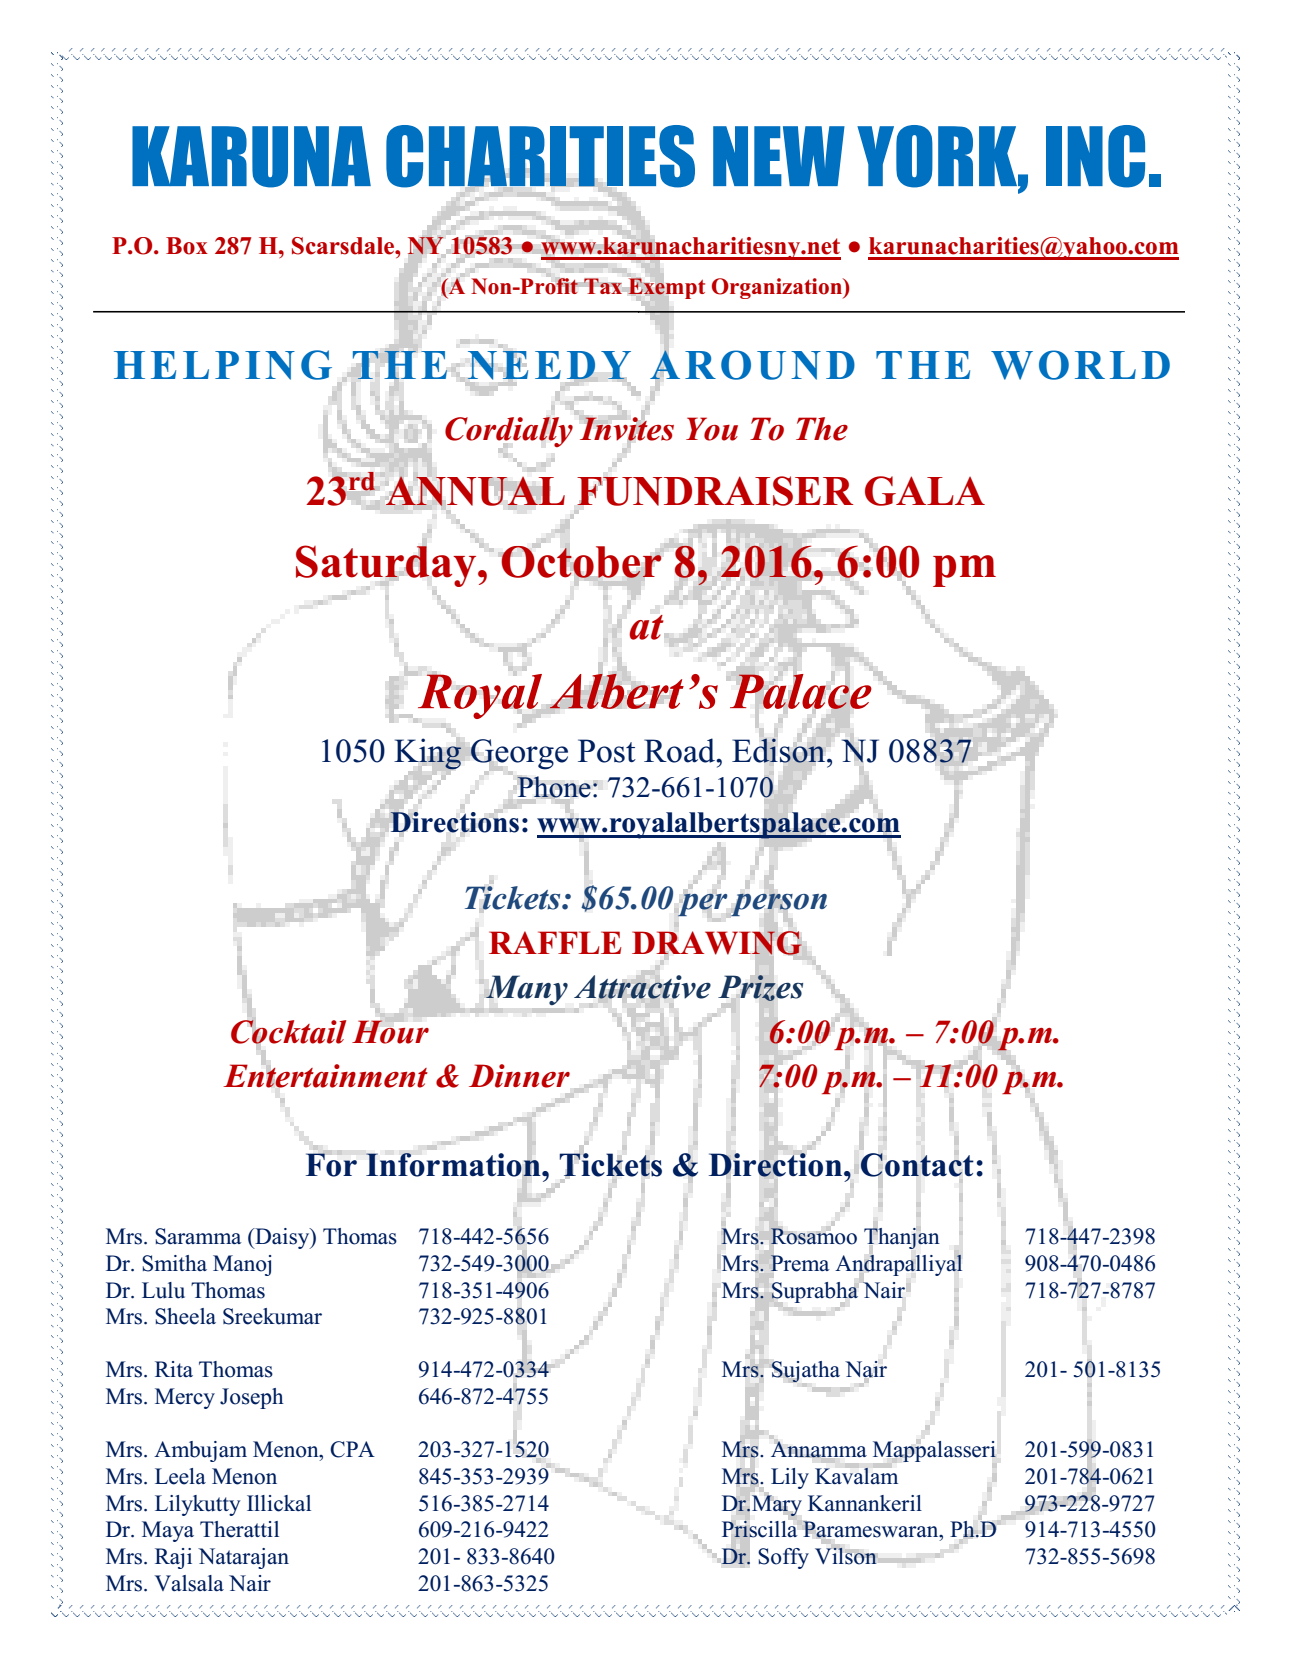 Karuna--Flyer-For-Fundraising-Gala-2015